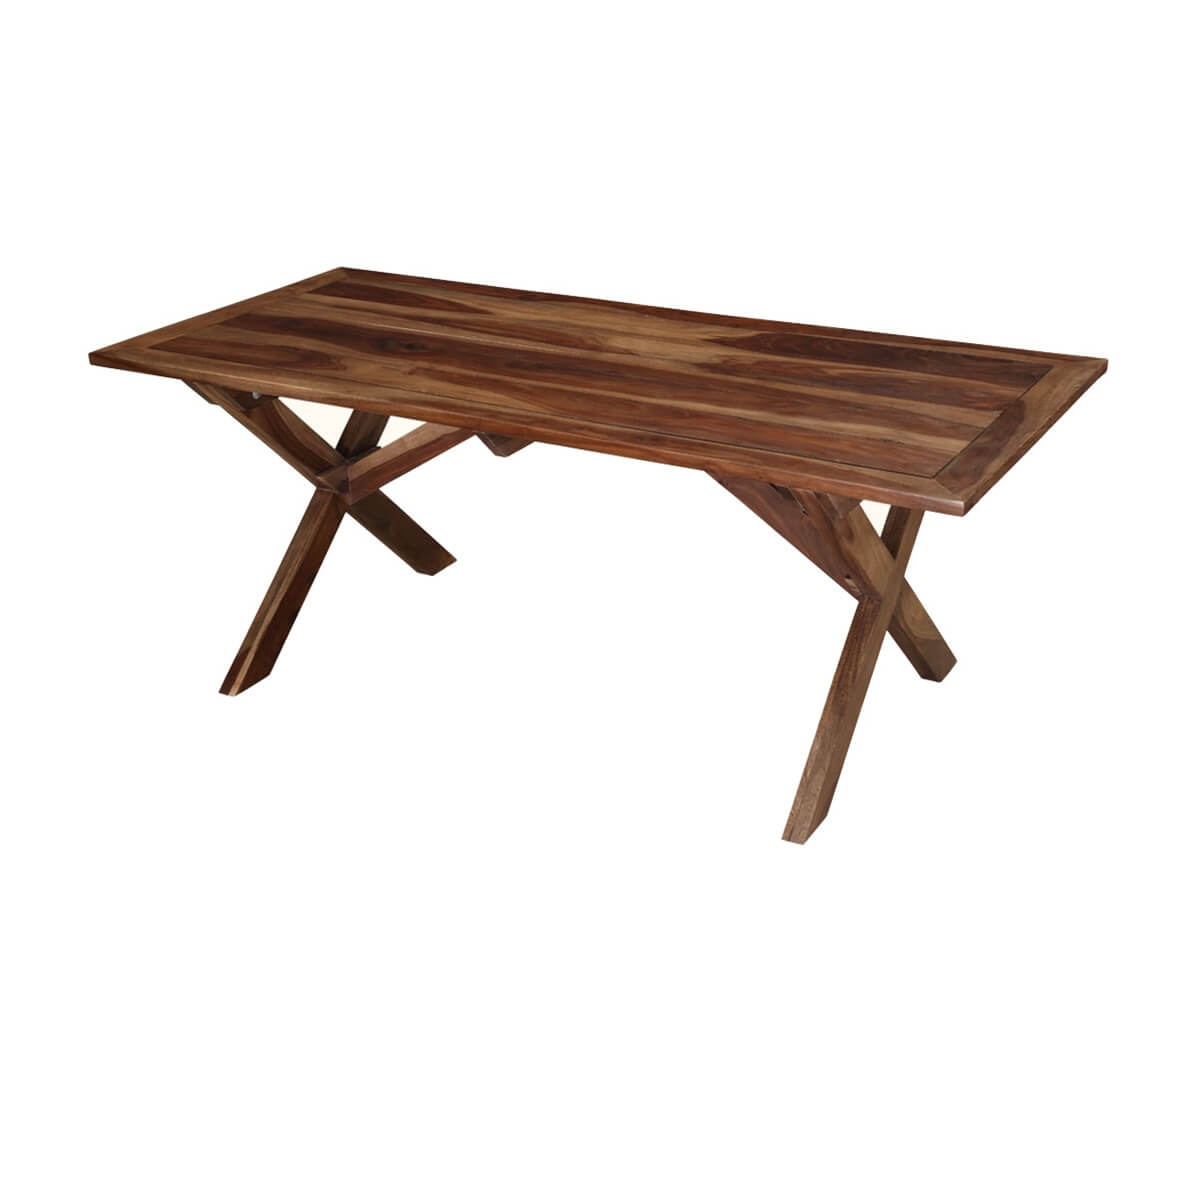 traditional american rosewood picnic style dining table. Black Bedroom Furniture Sets. Home Design Ideas